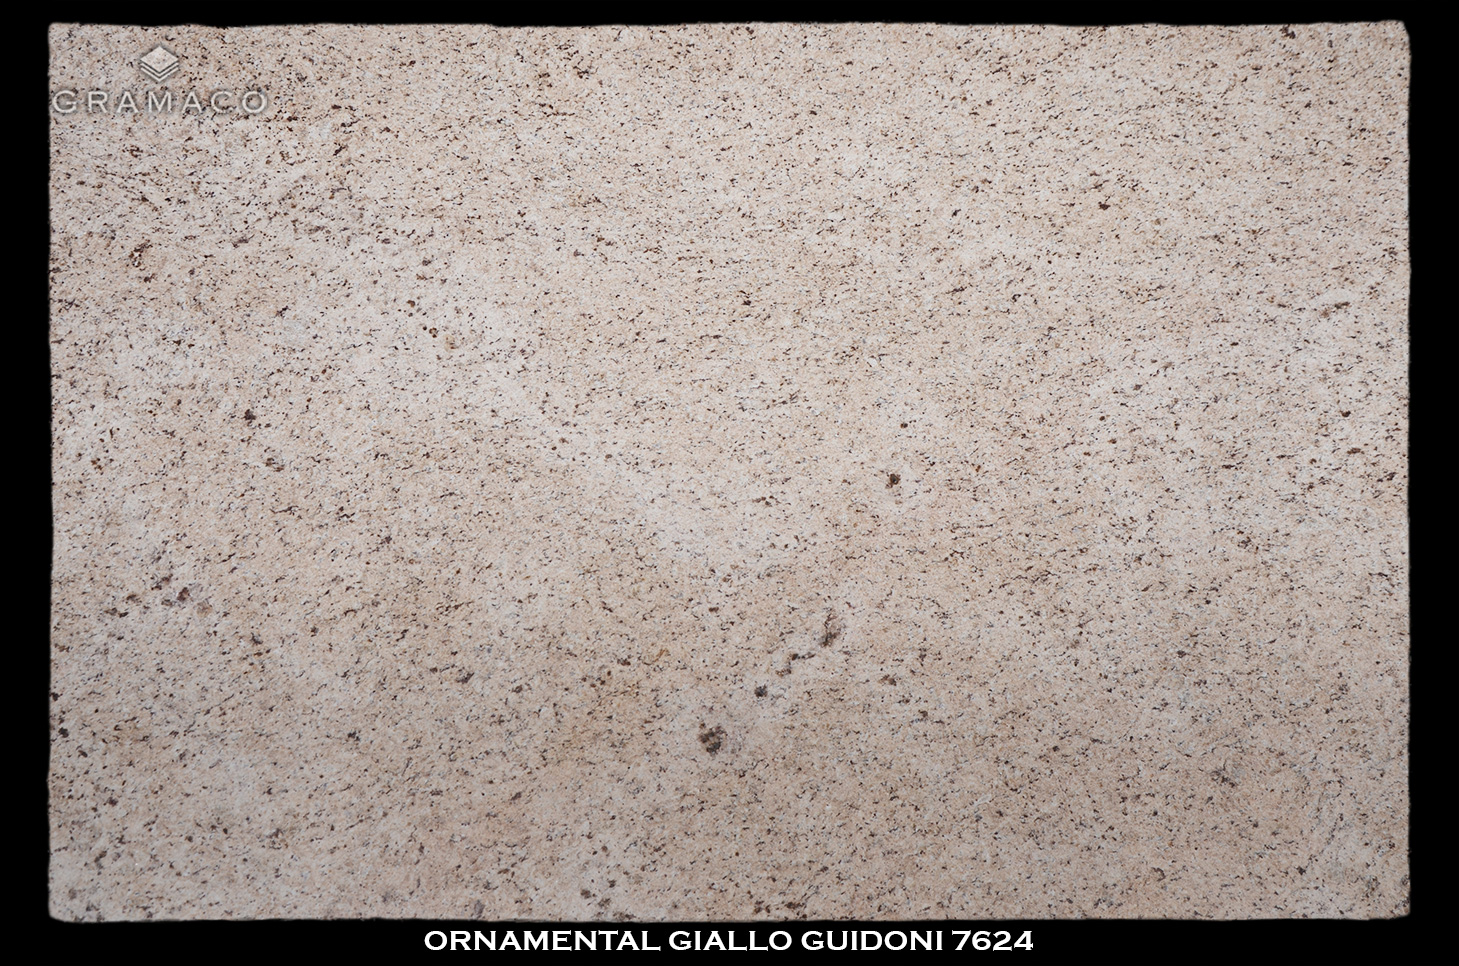 ORNAMENTAL-GIALLO-GUIDONI-7624---FULL-SLAB-BLACK